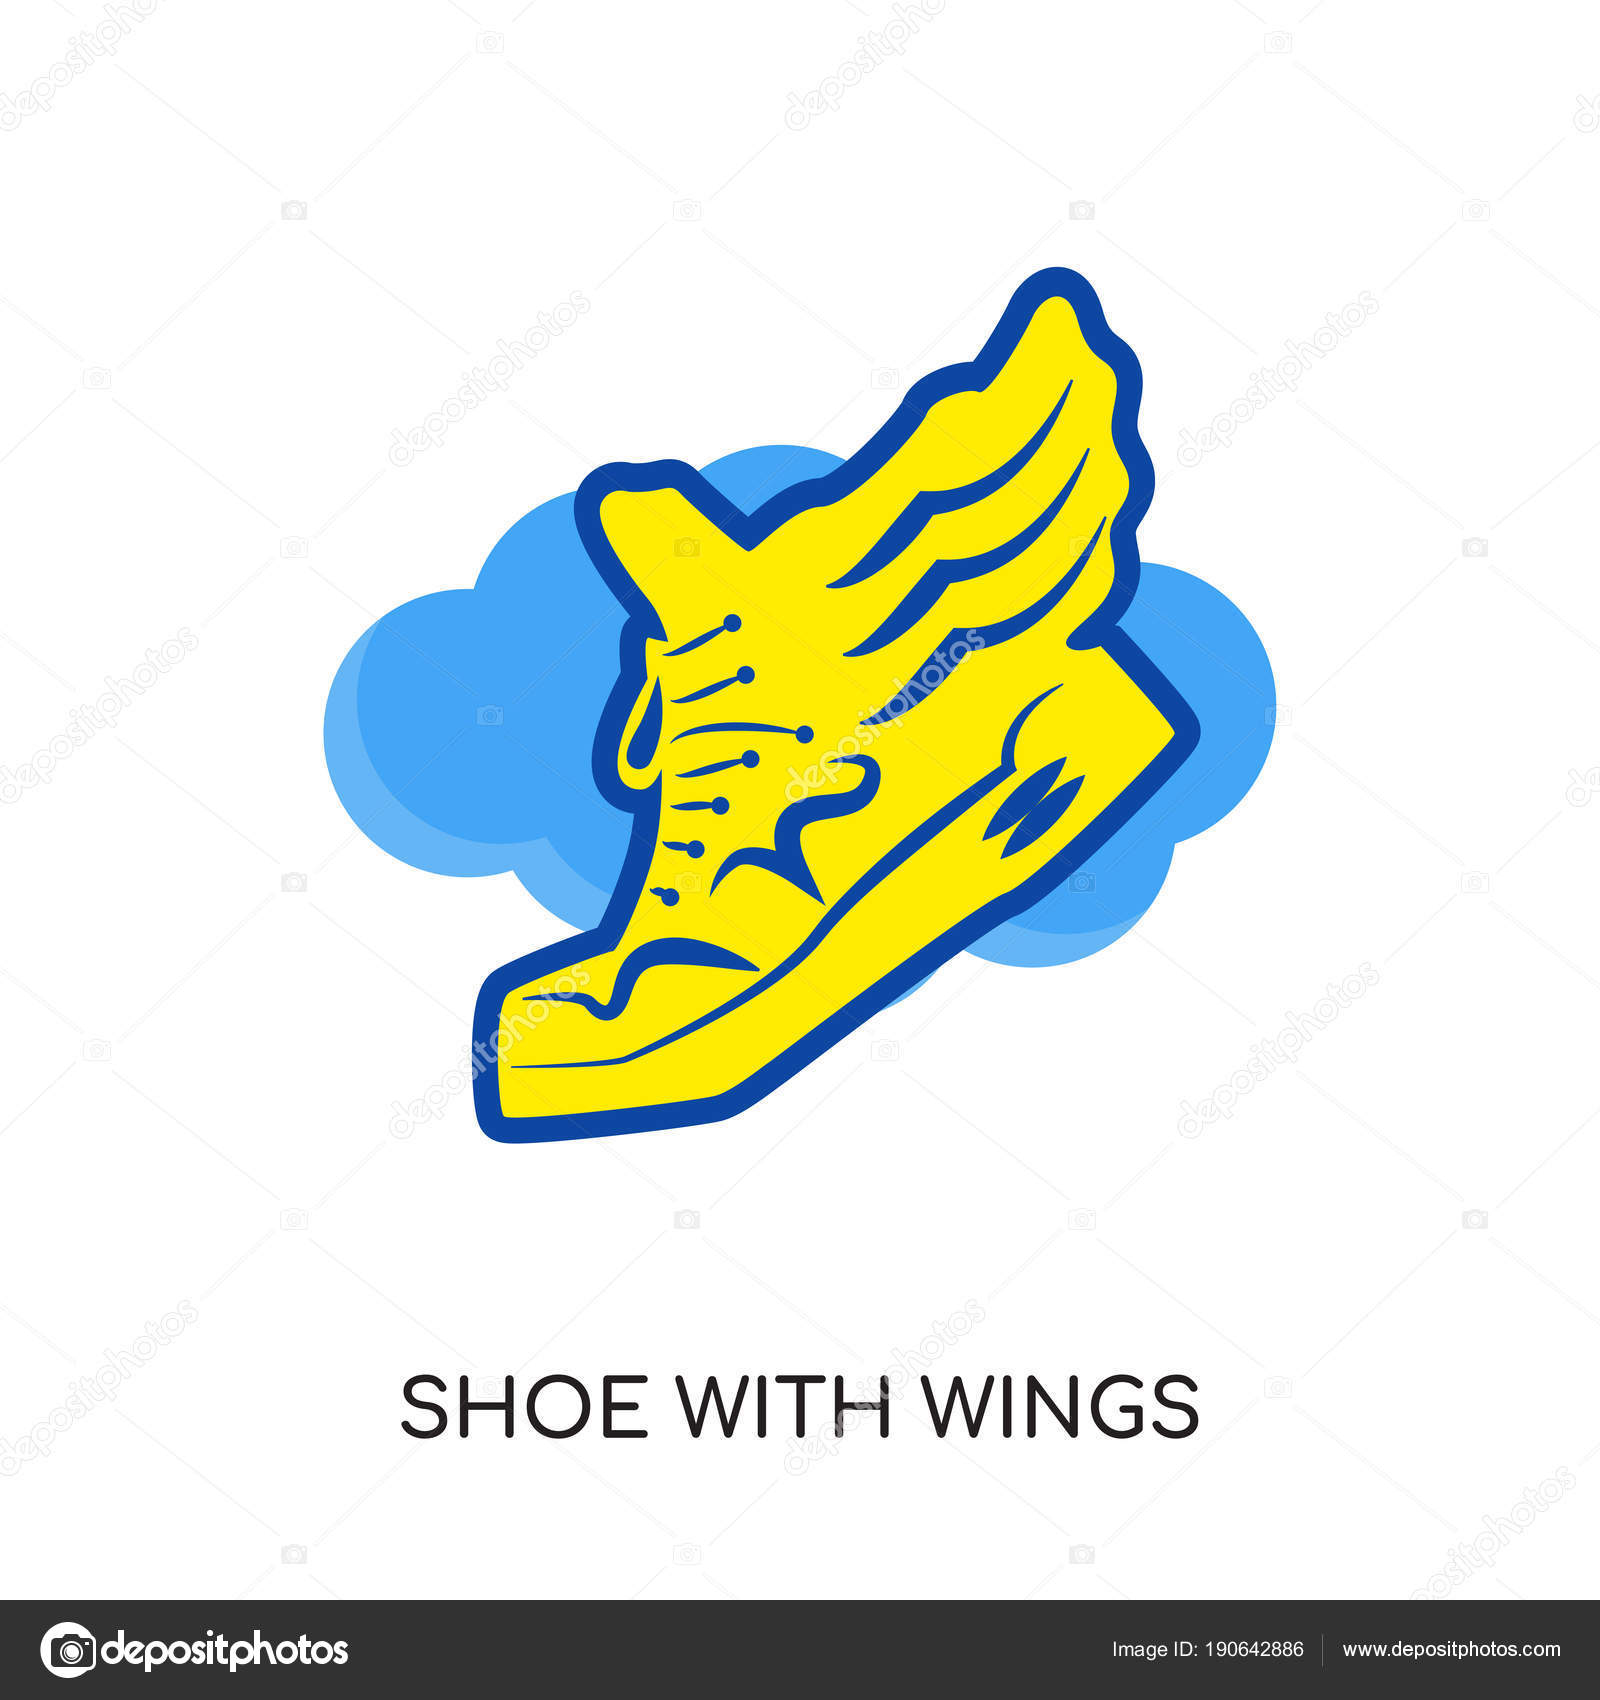 shoe with wings logo isolated on white background for your web rh depositphotos com yellow shoes with wings logo red shoe with wing logo